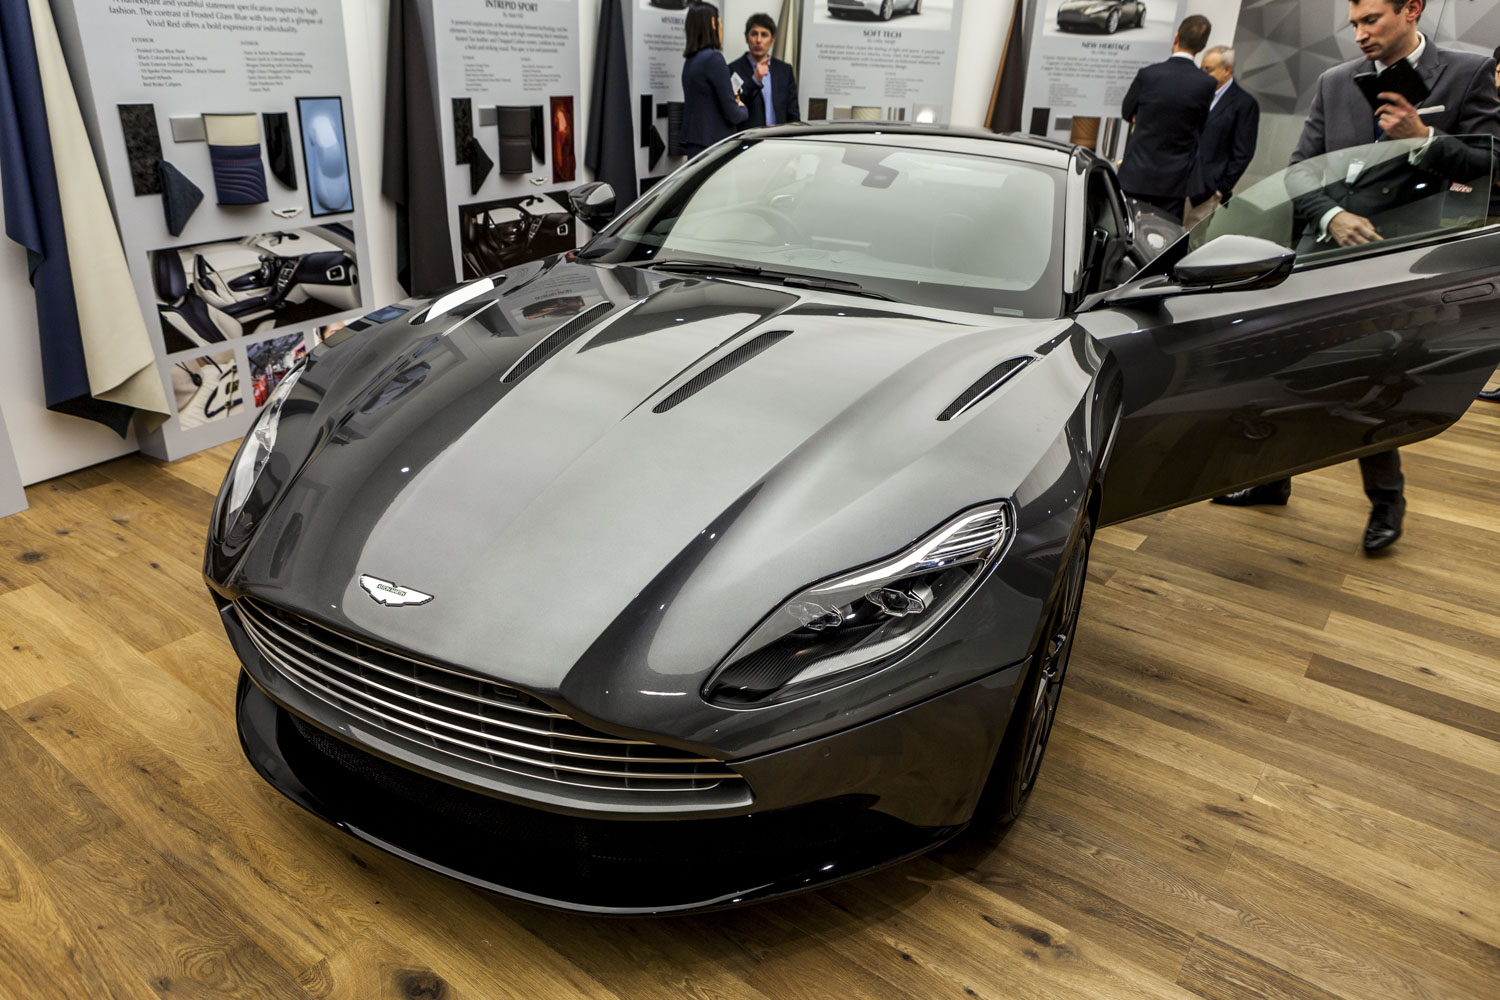 Aston Martin Daniel Craig Spectre Wallpaper as well Aston Martin Db1 Picture Leak Db10 Goes Auction further 1084343 honda Accord Or Nissan Altima Which One Does V 6 Better in addition Aston Martin Db10 Uniquement Pour James Bond as well James Bond Spectre The Auction 6986 1. on 2016 aston martin db10